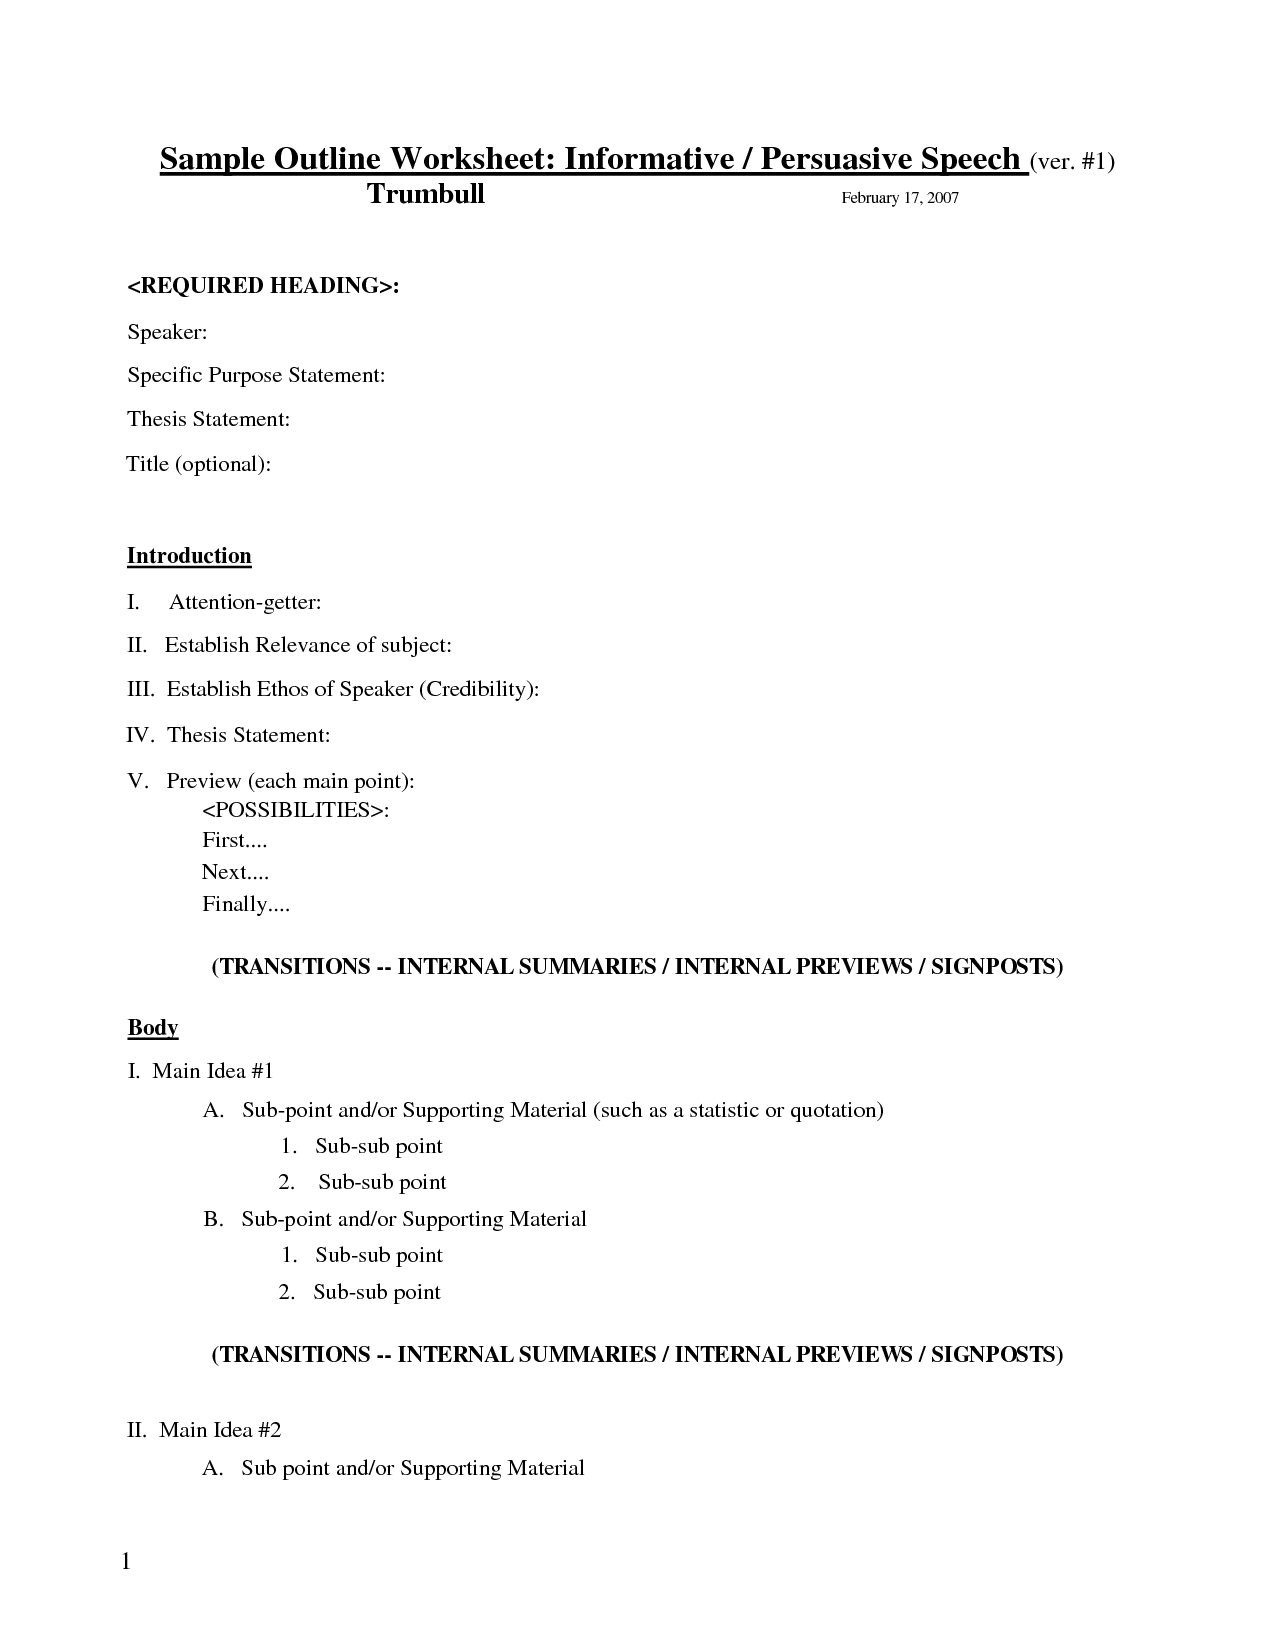 18 Best Images Of Sample Outline Worksheet